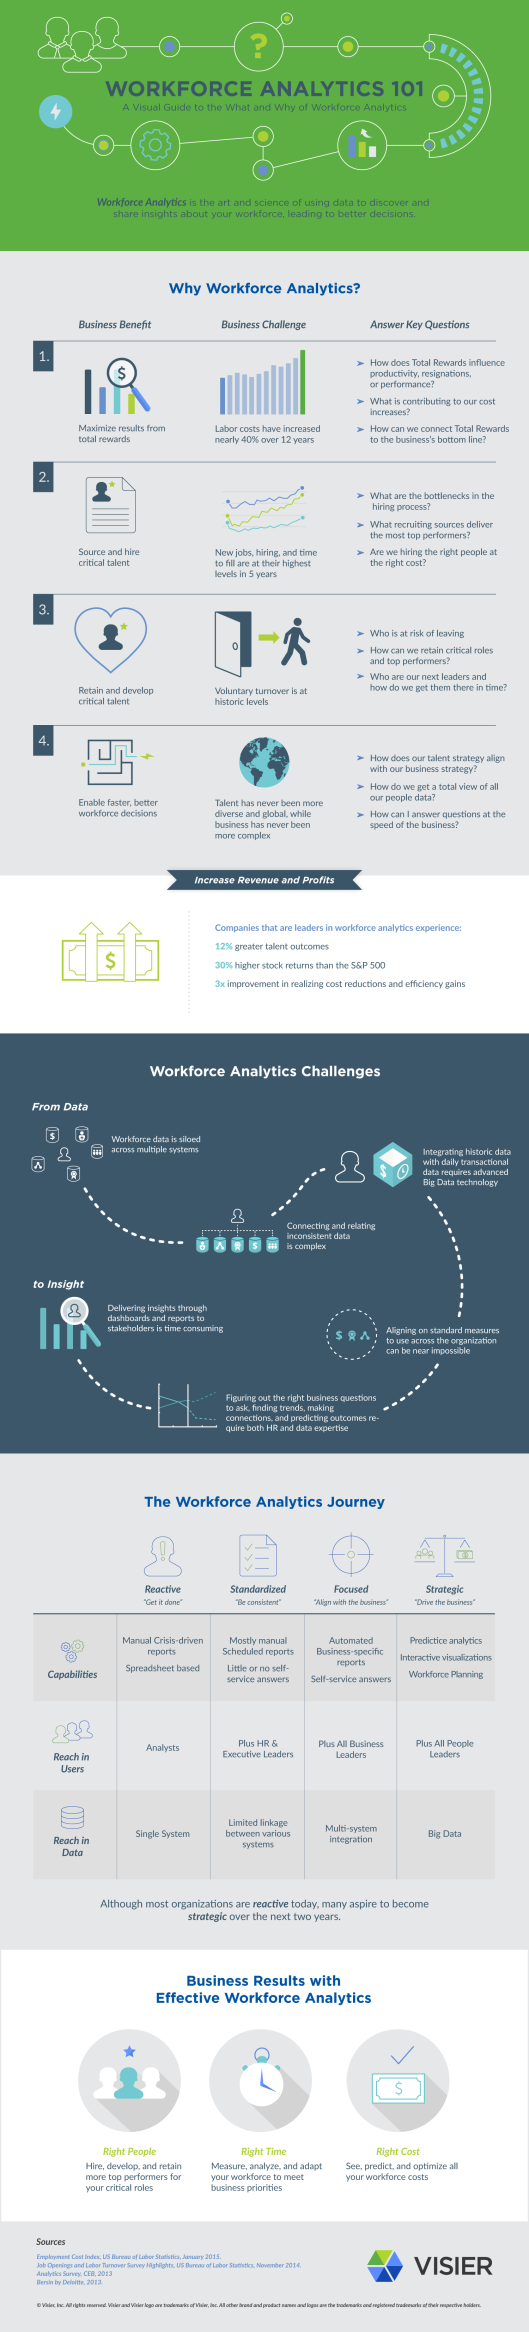 Visier-Workforce-Analytics-101-Infographic